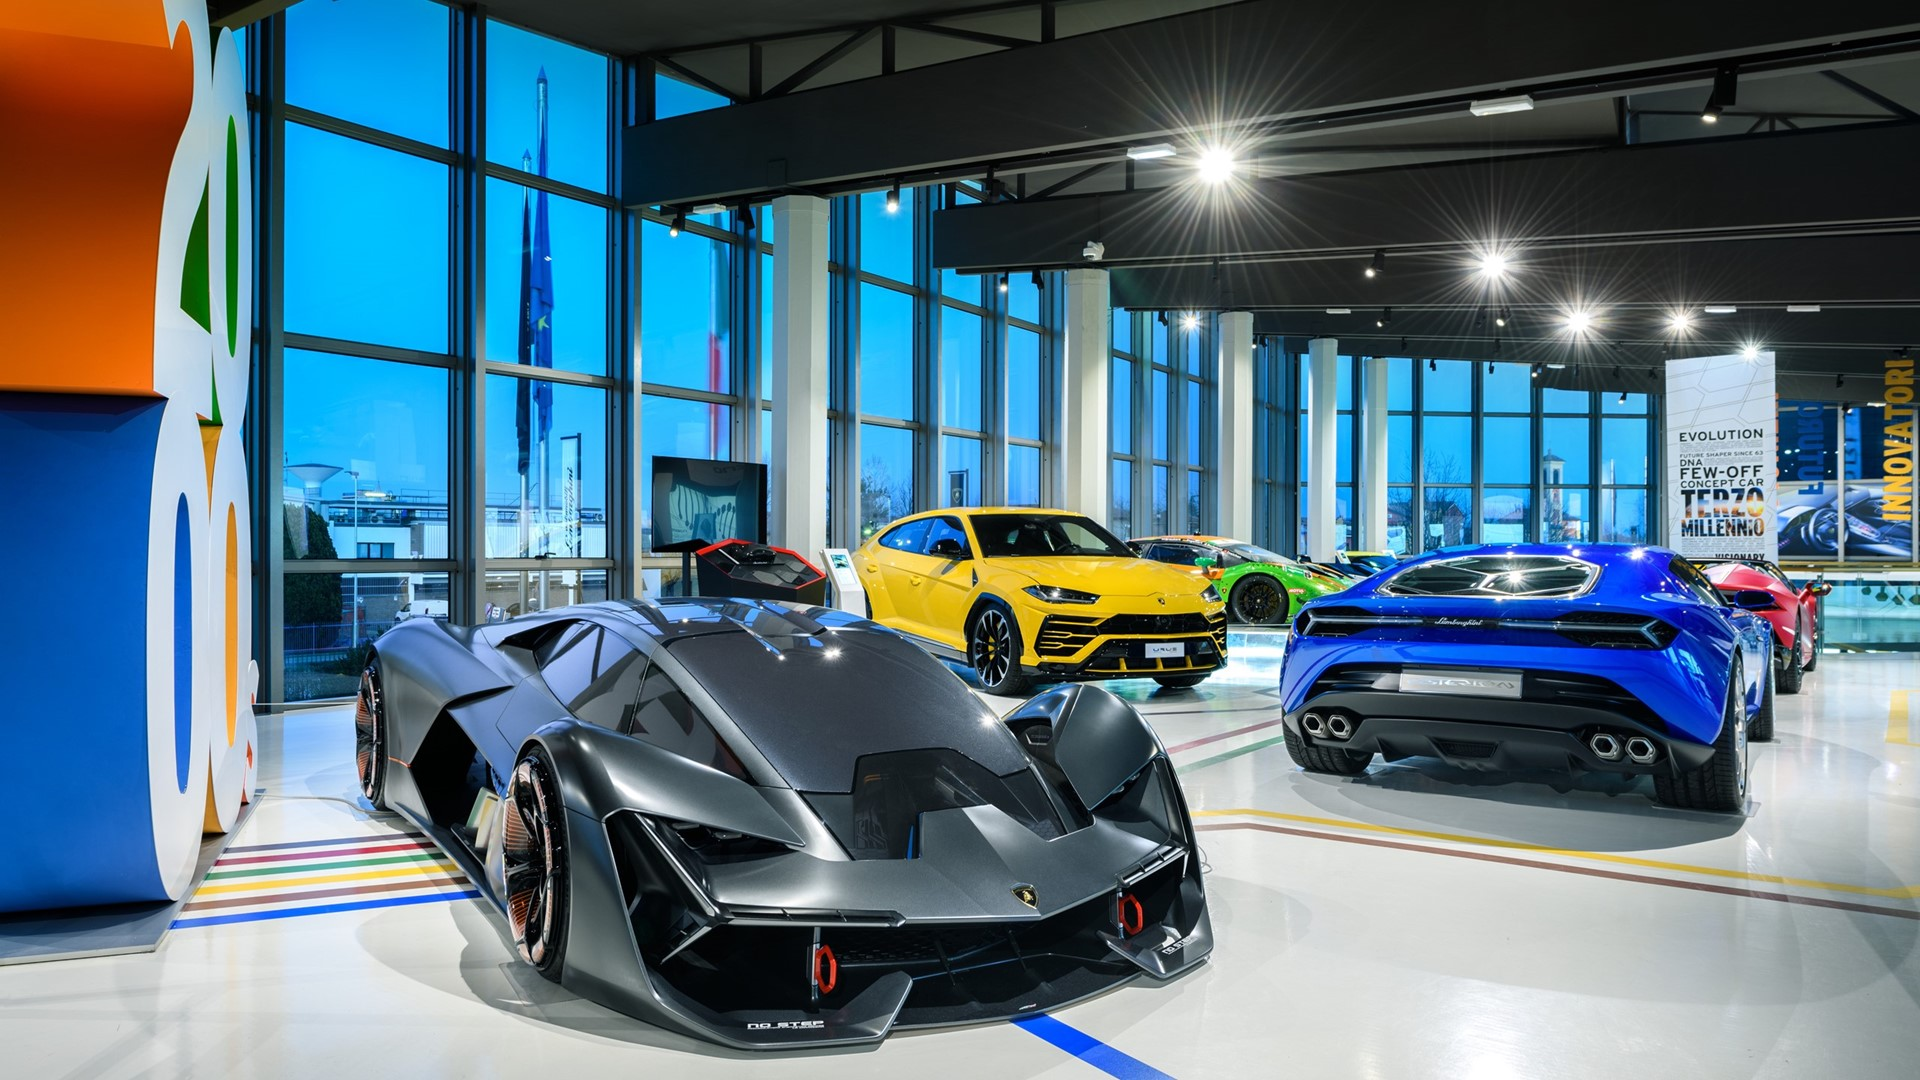 The Lamborghini Museum reopens its doors to the public The new Sián Roadster on display until 12 July - Image 8